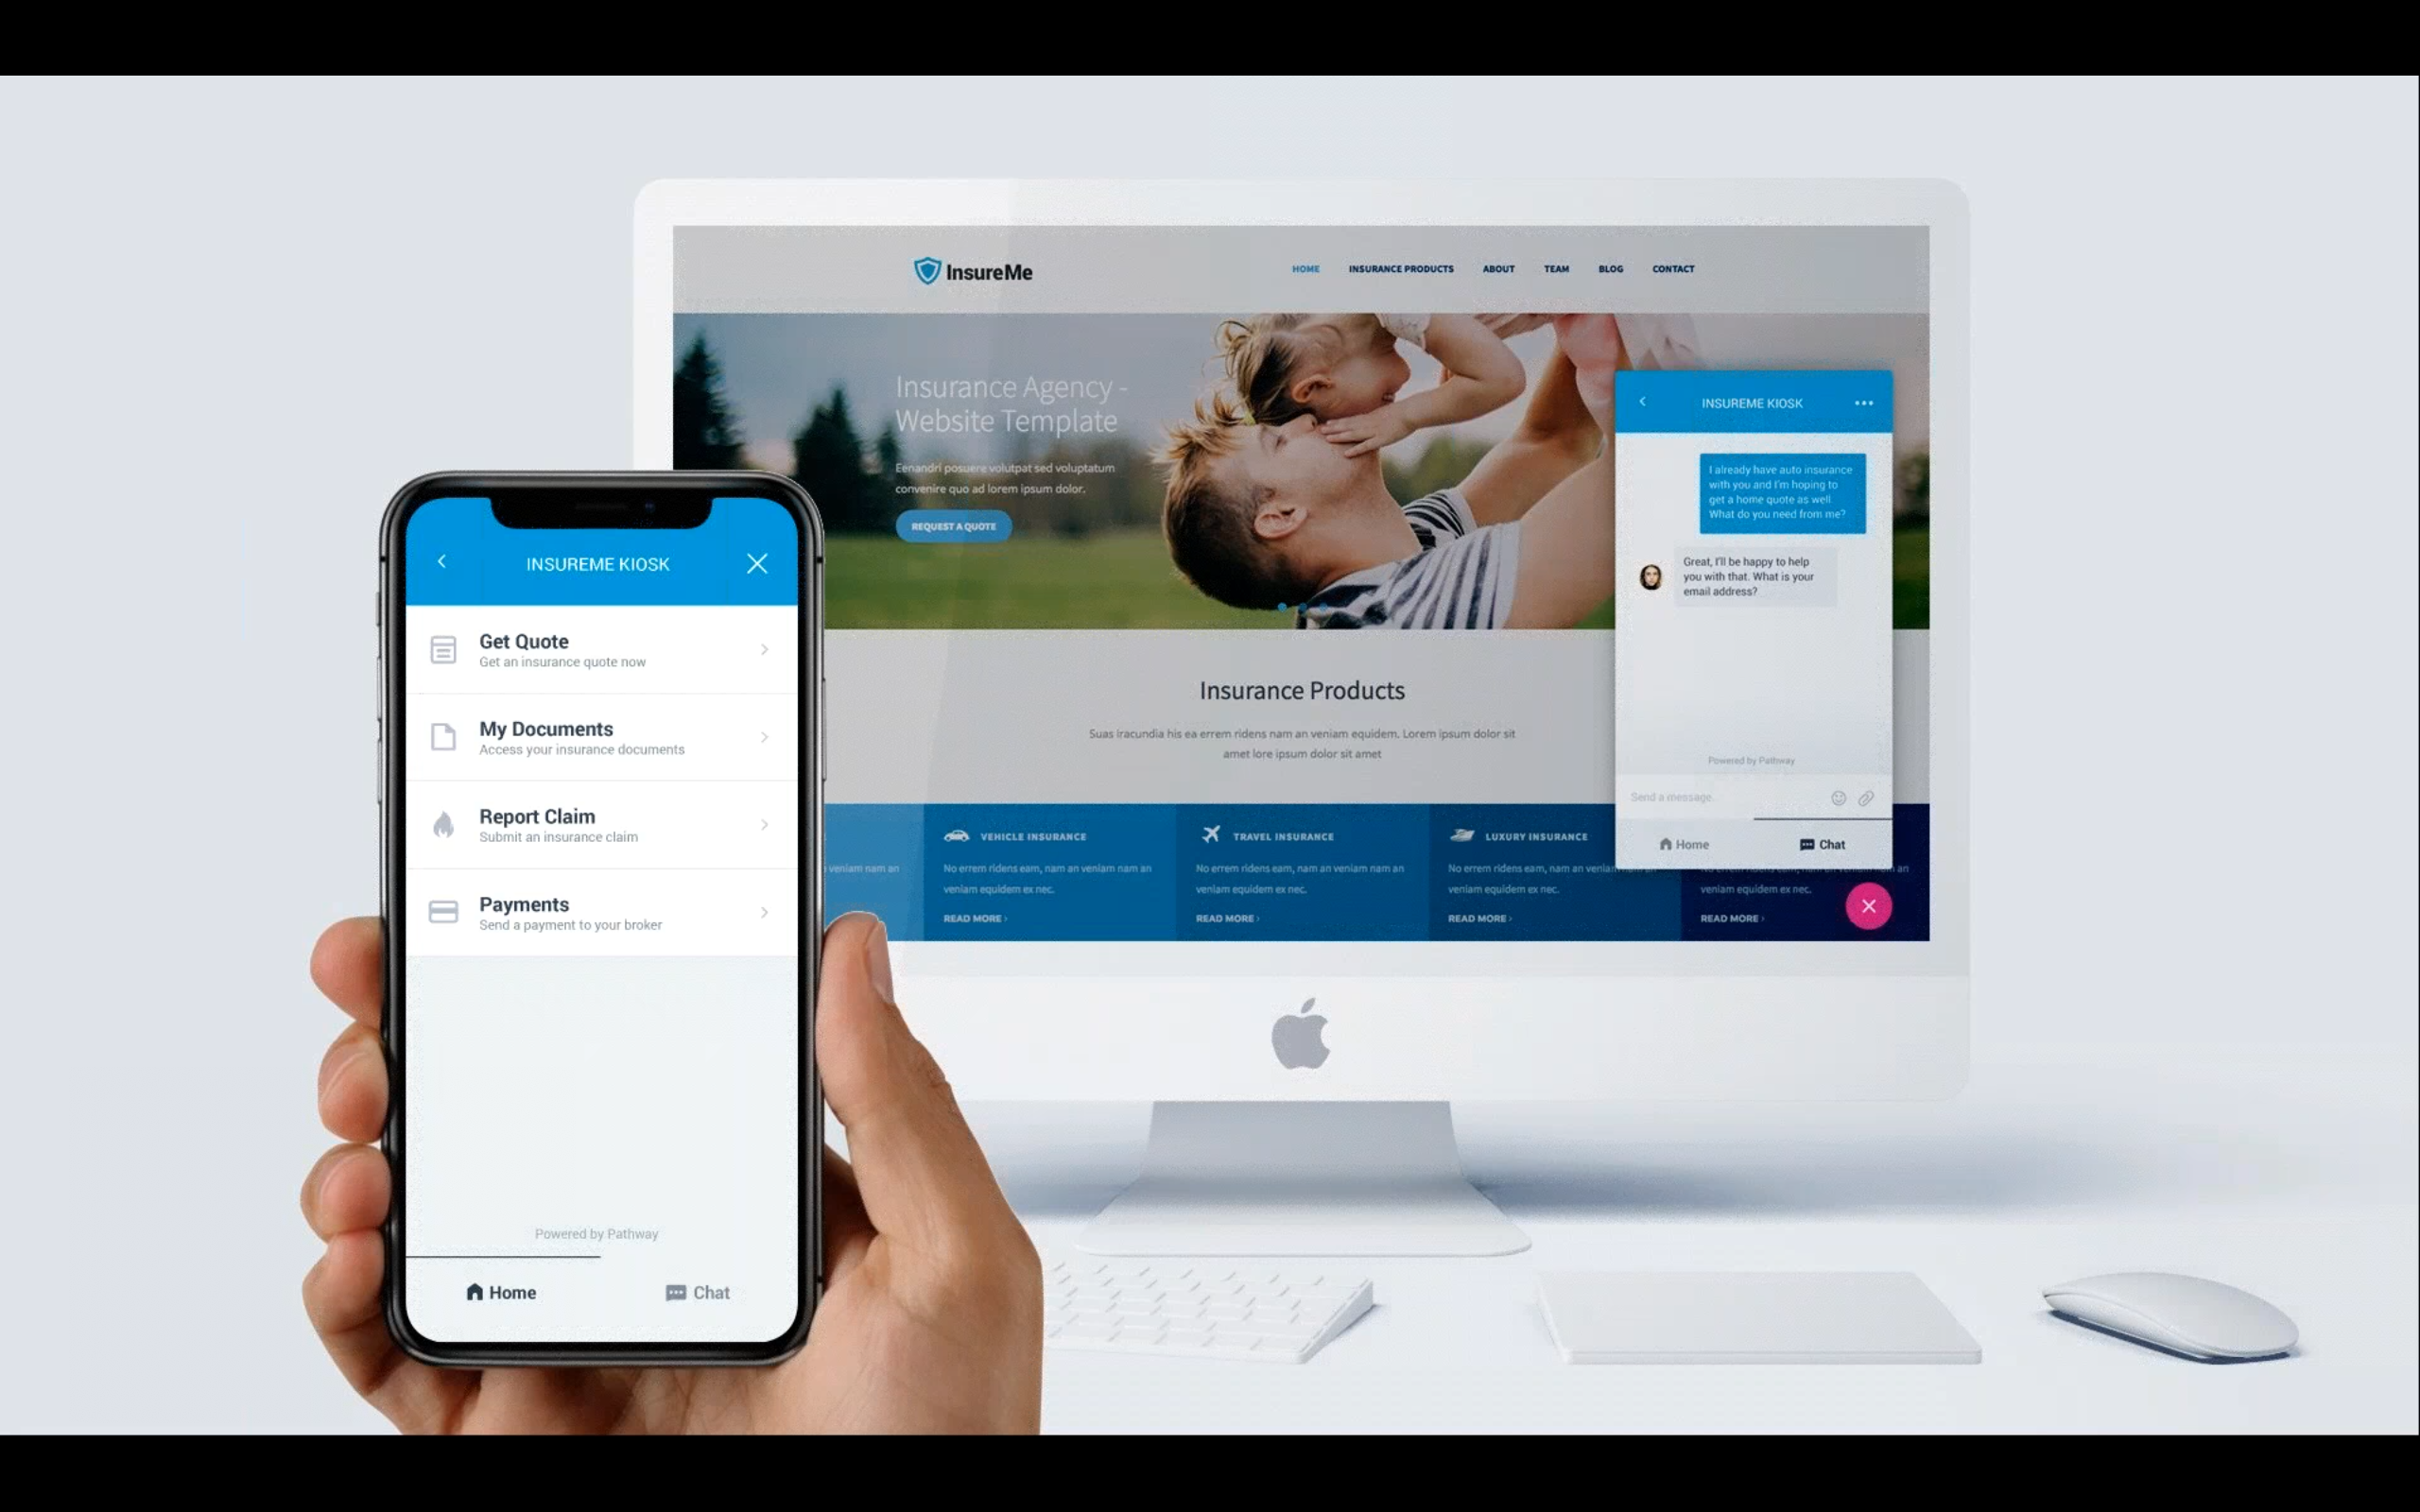 Self-Service Kiosk is a multi-channel communication tools that makes it convenient for policyholders to chat with your brokerage, access policy documents, file an auto claim, and make a payment.